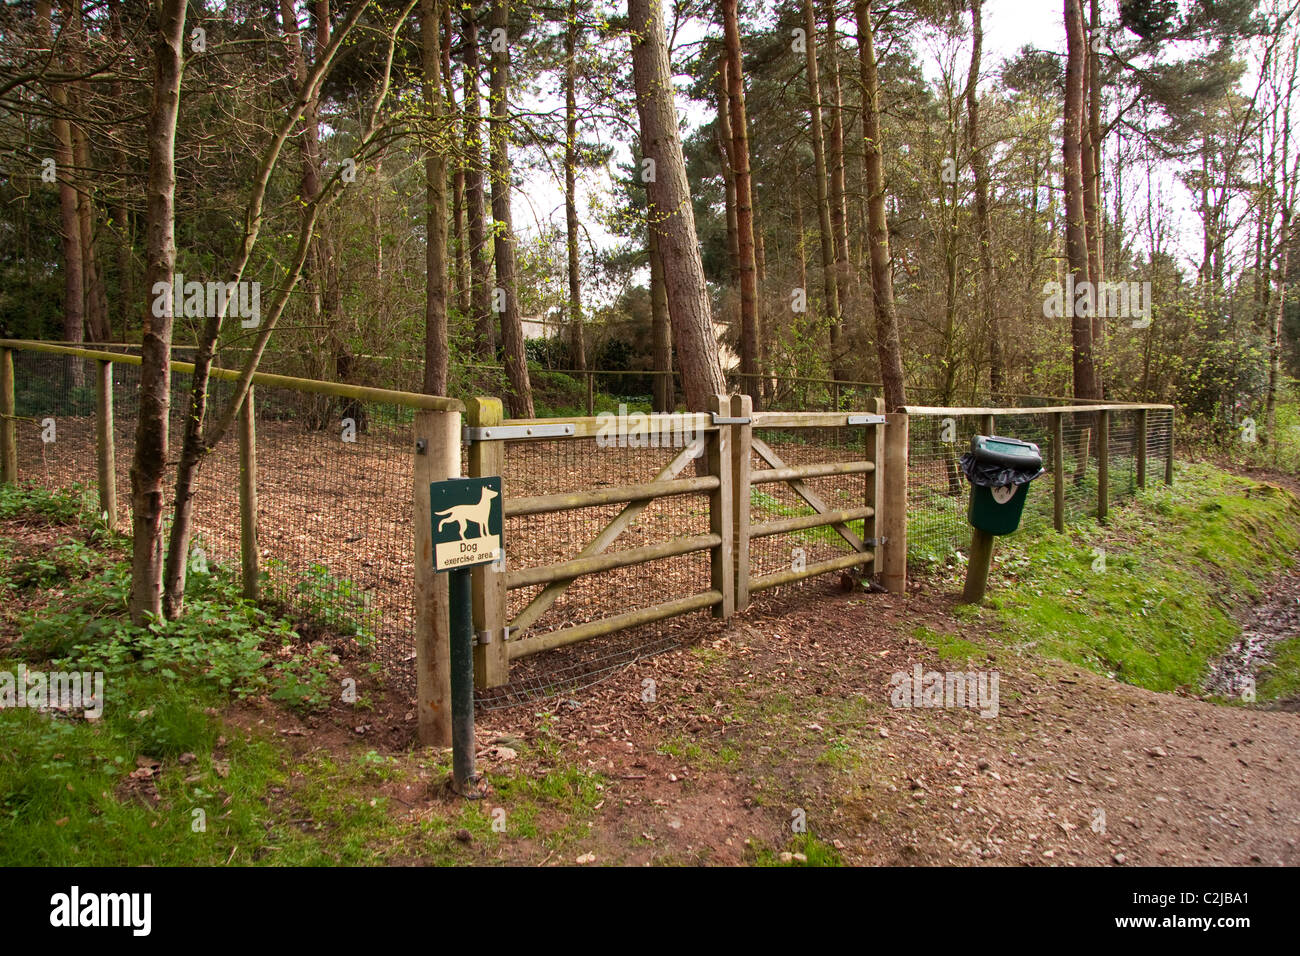 Dog Walking Area Or Toilet At CenterParcs Sherwood Forest Stock Photo Roy